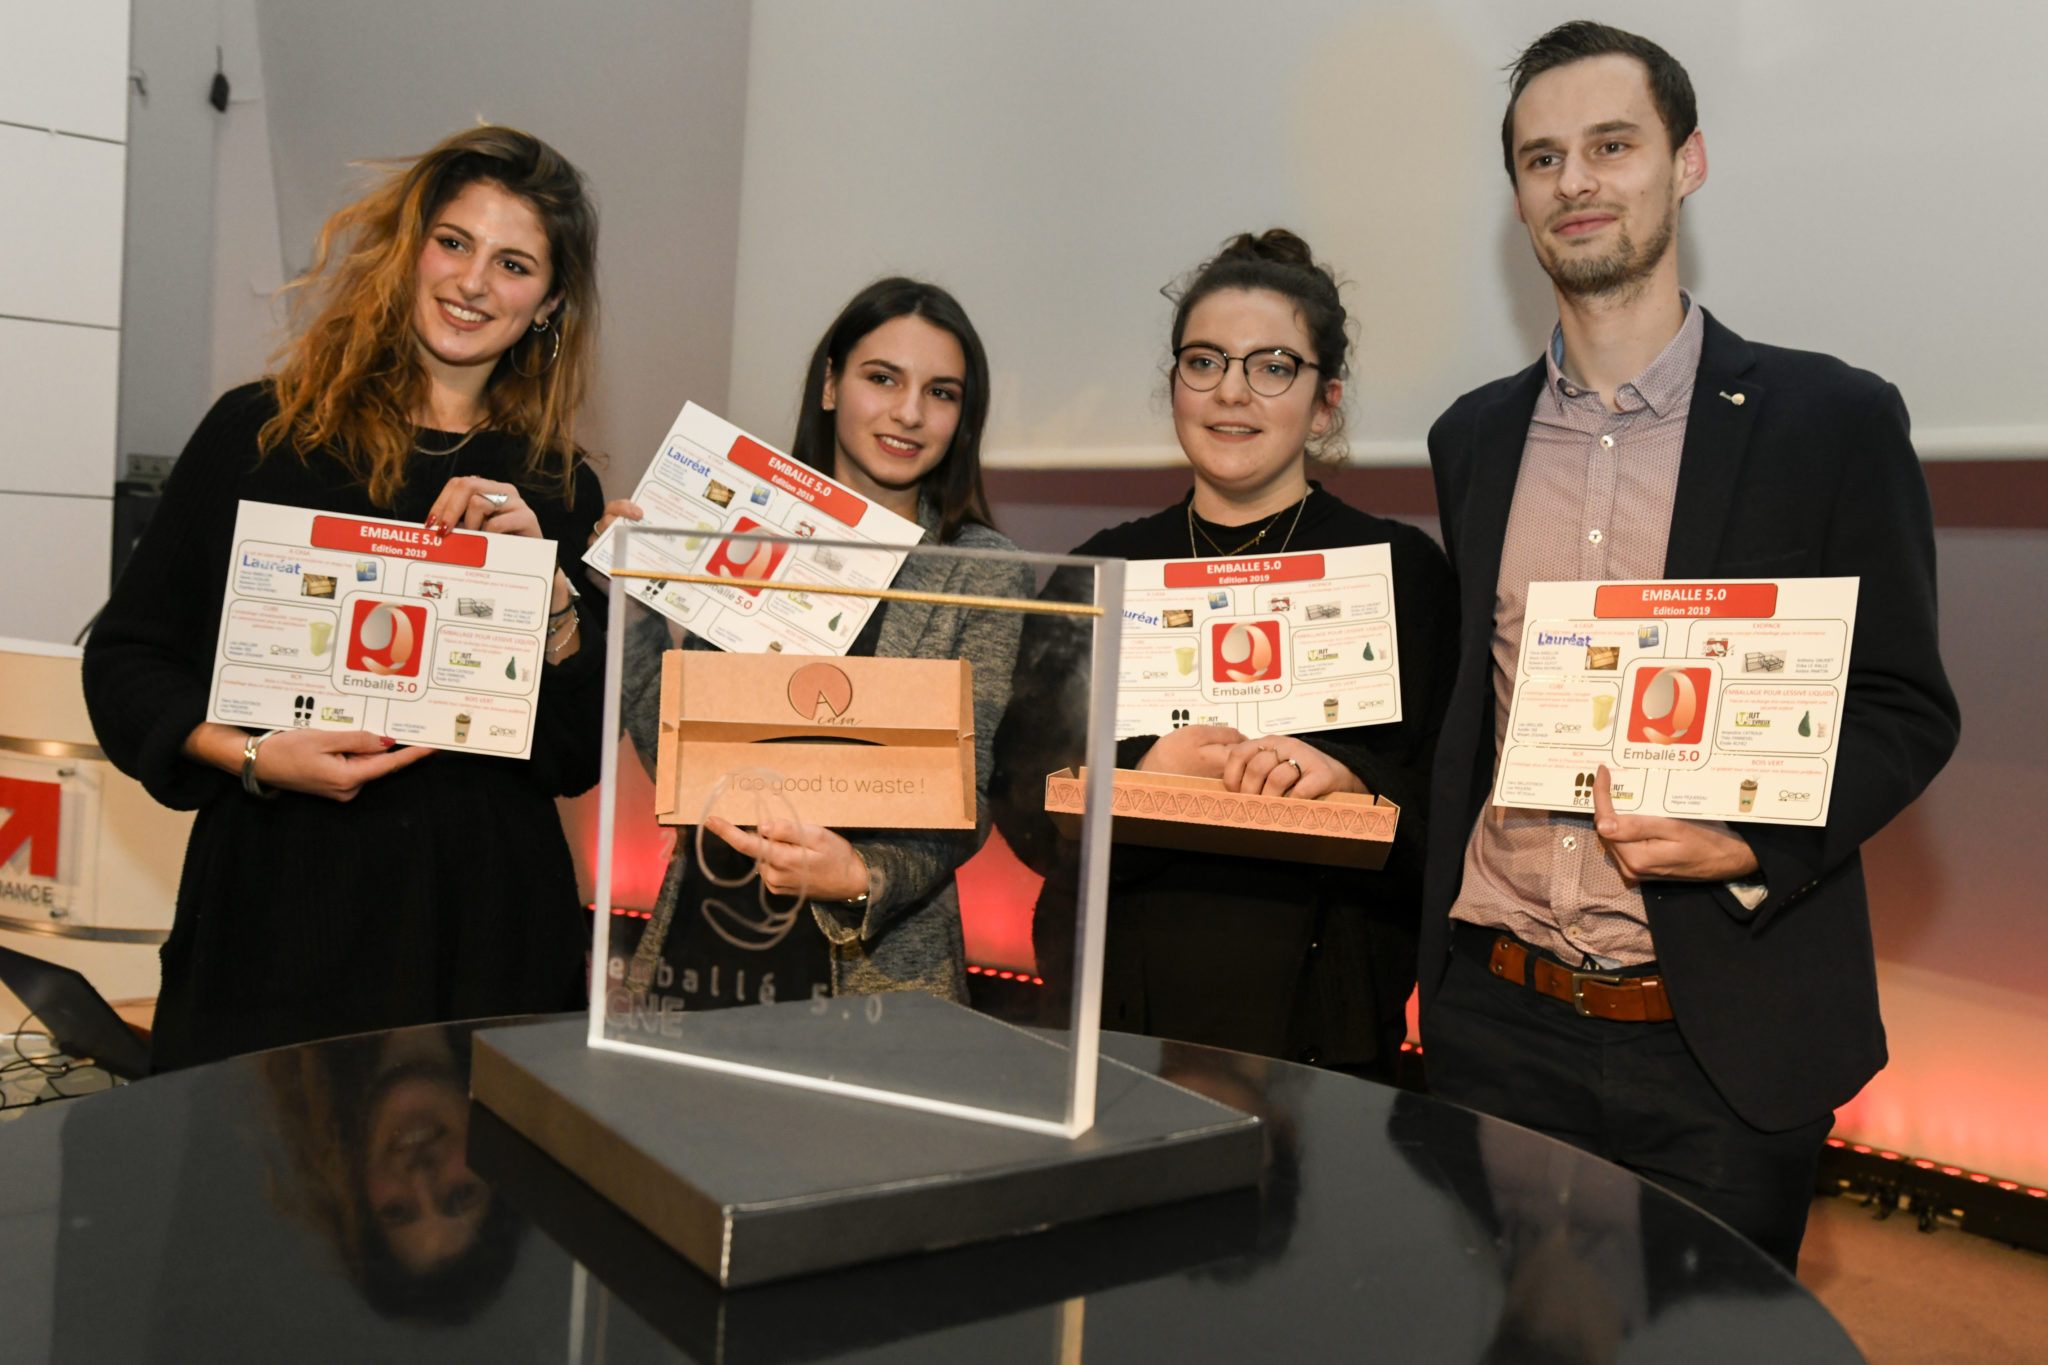 Interview of the laureates of our Emballé 5.0 competition – 2019 Flavia BABILLON, Alexis CAJDLER, Nolwenn GUYOT, Charlène RAYMOND